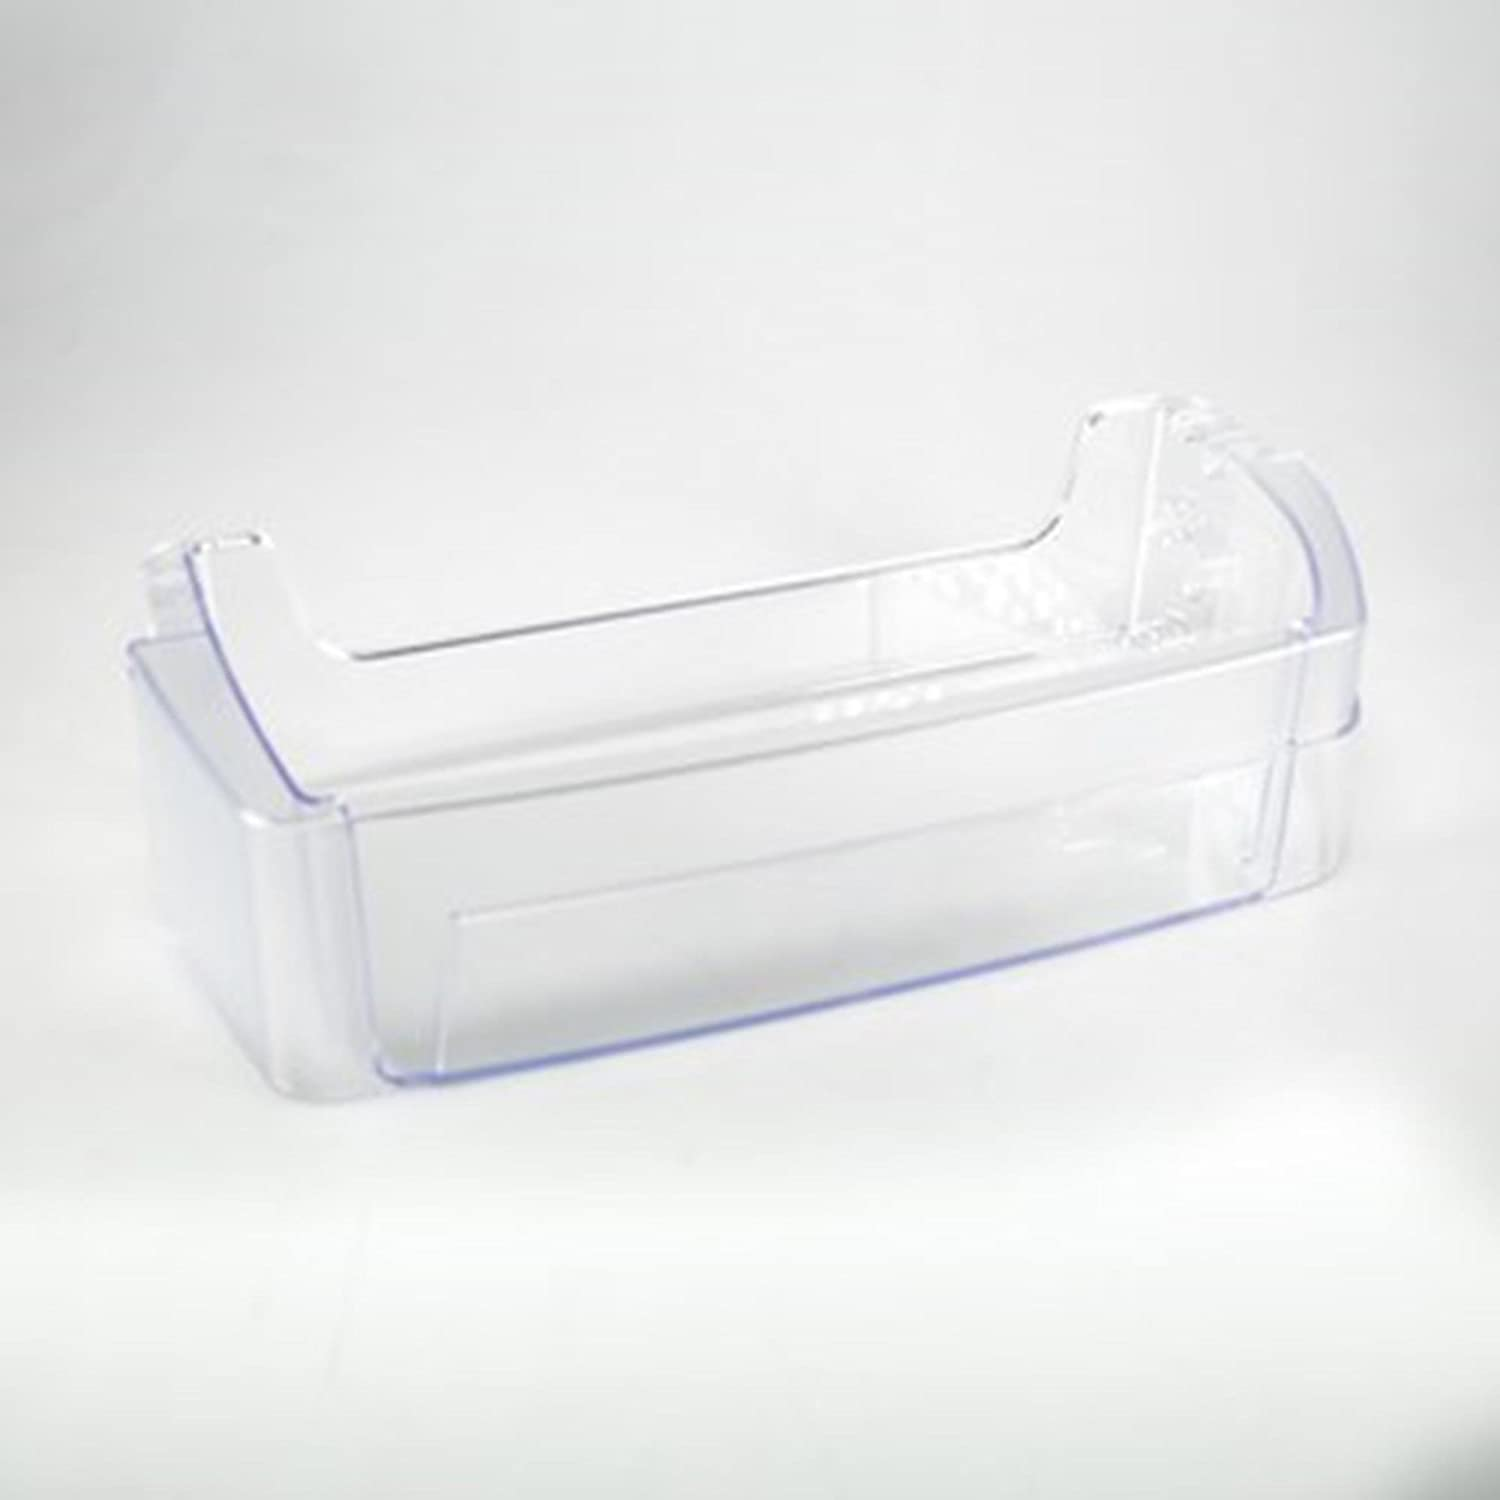 Ge WR71X24428 Refrigerator Door Bin Genuine Original Equipment Manufacturer (OEM) Part